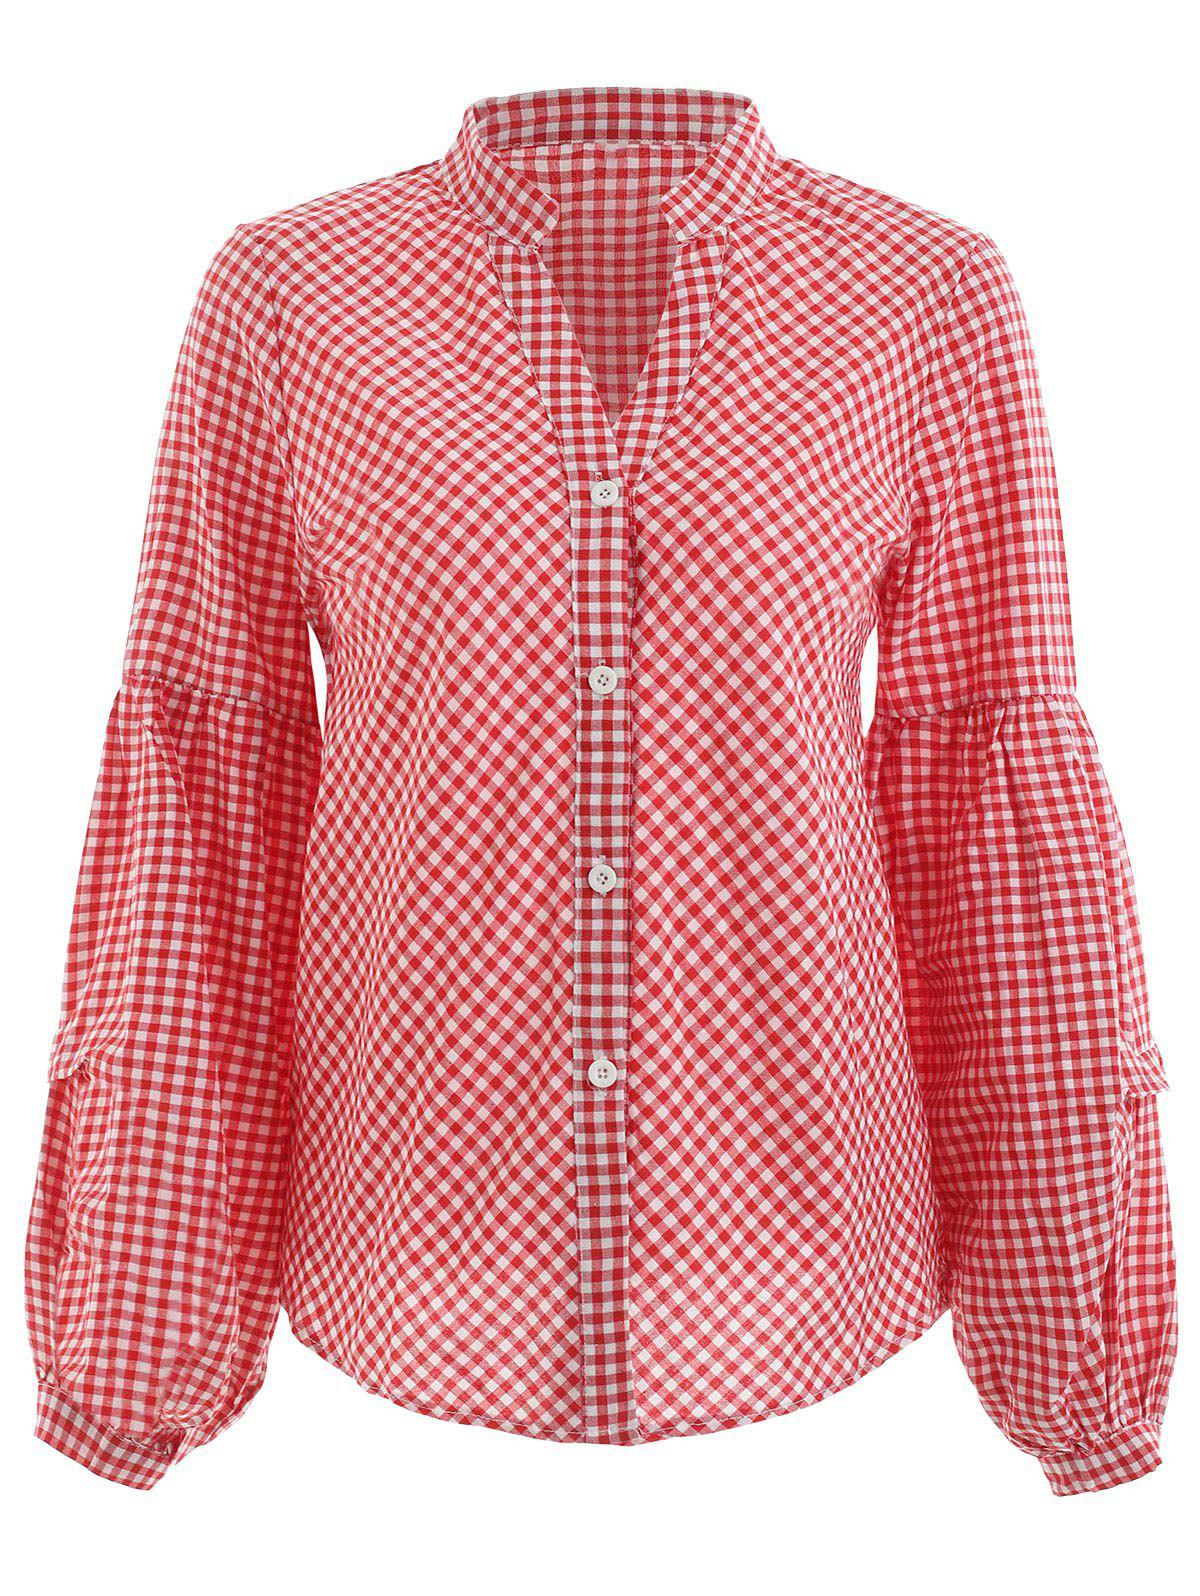 Fancy Gingham Print Balloon Sleeve Shirt